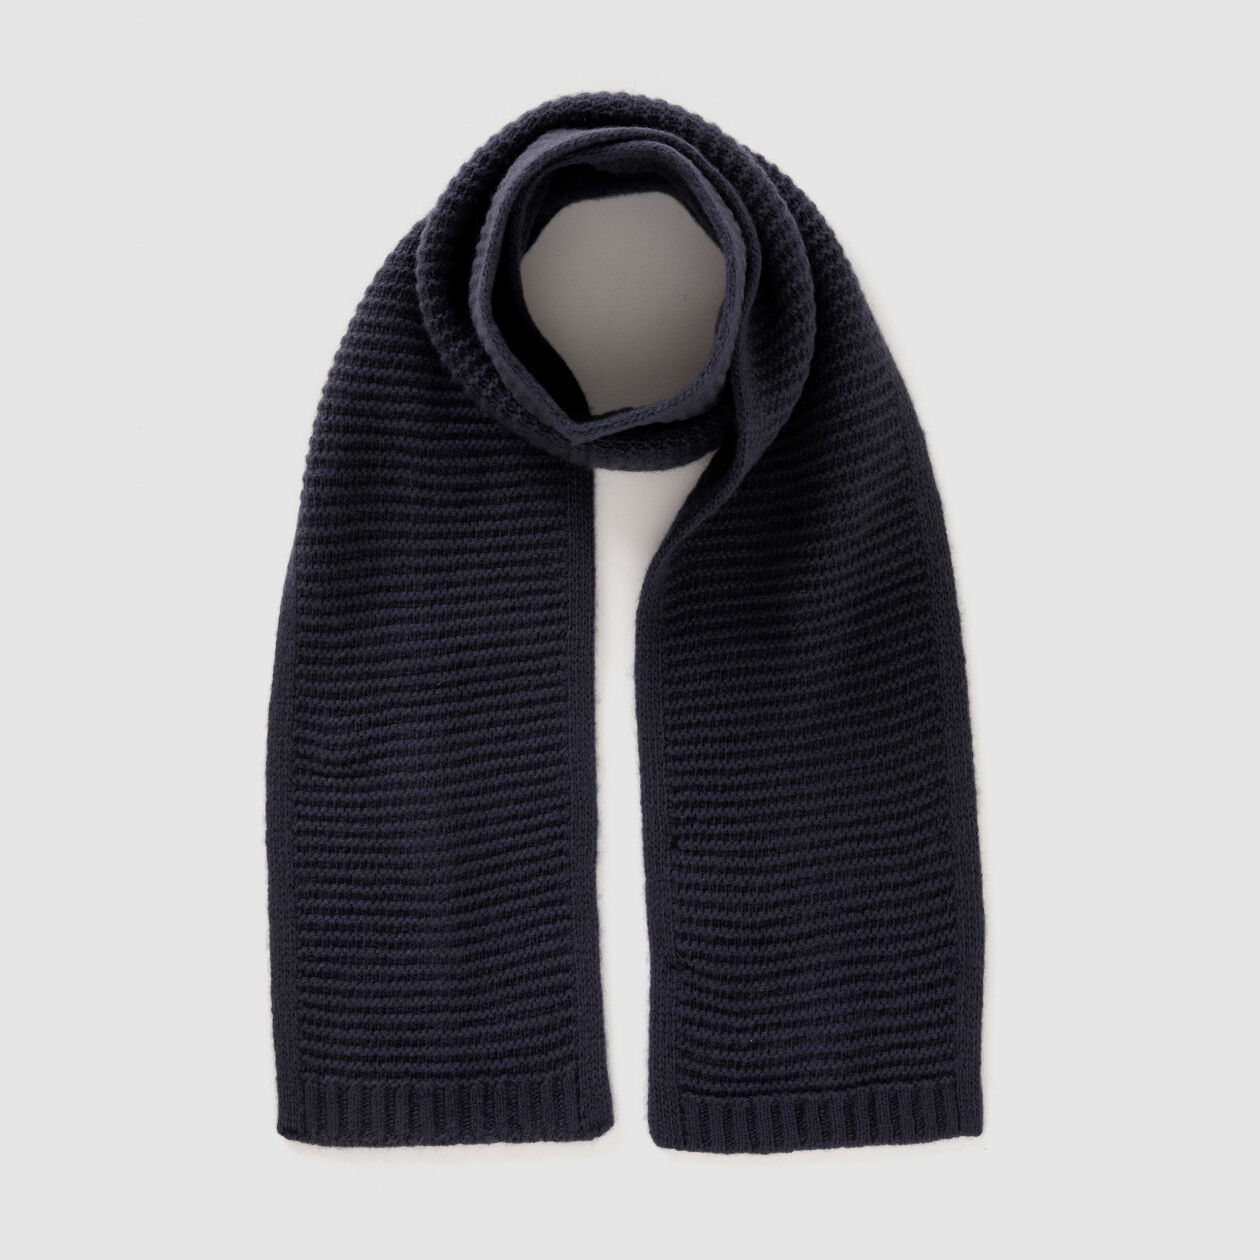 Scarf in solid colored wool